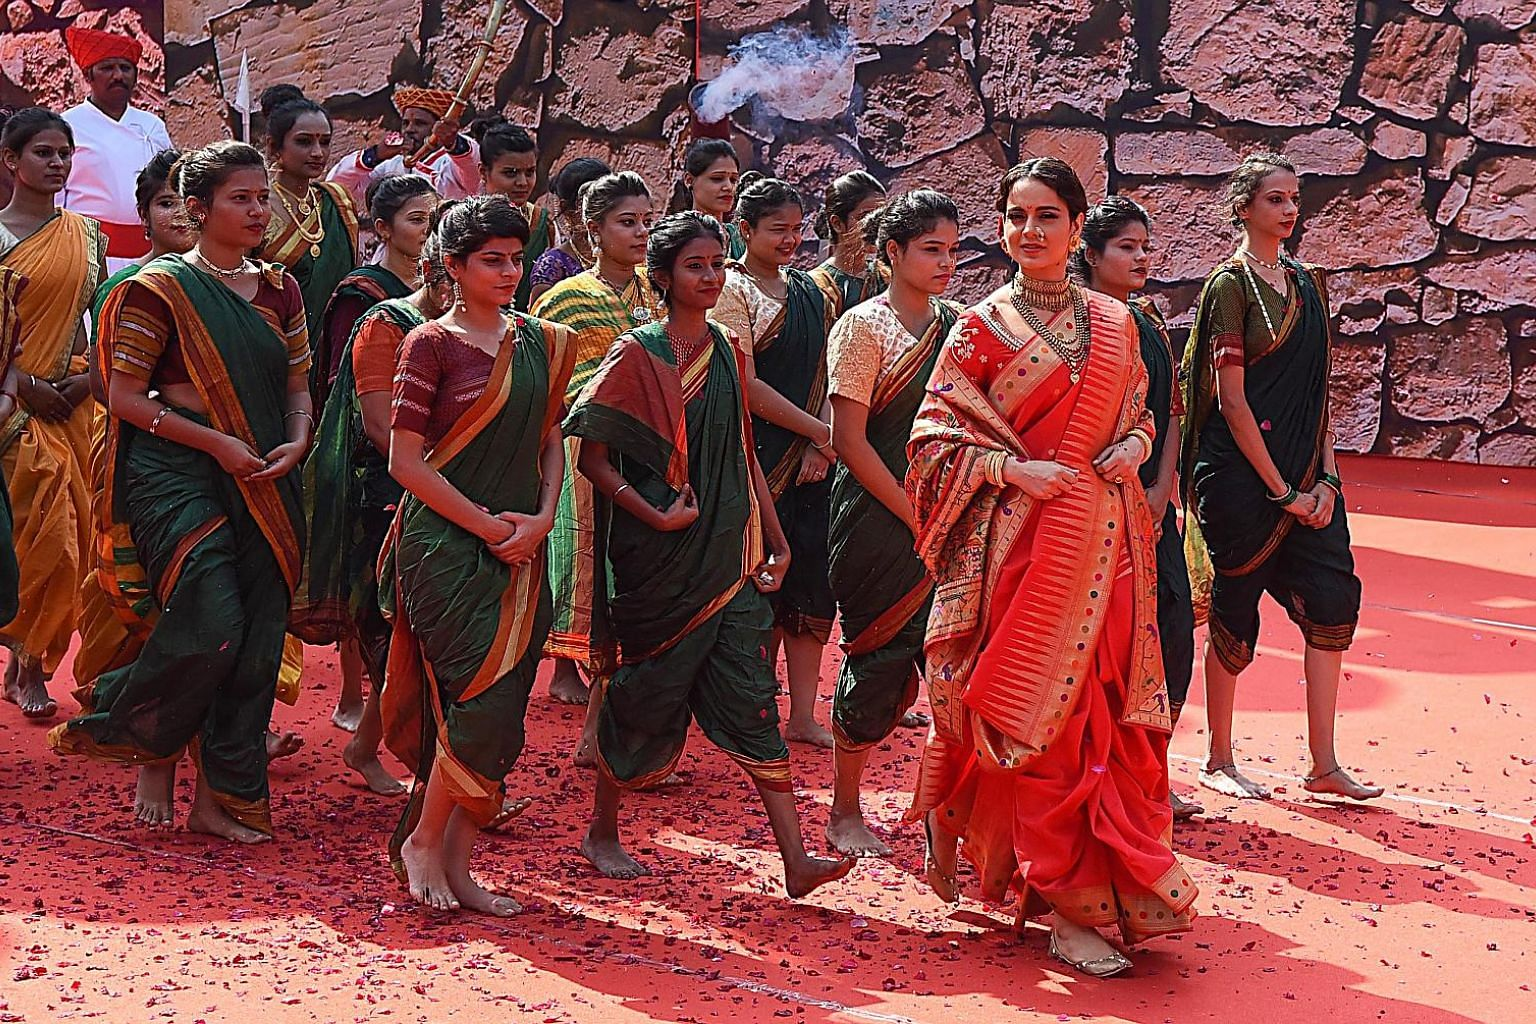 Bollywood star Kangana Ranaut (in red) plays Rani Laxmibai, a 19th-century Indian princess who fought against Britain's colonial army, in the movie Manikarnika: The Queen Of Jhansi. In one scene, soldiers snatch a calf to kill for steak, and Rani res